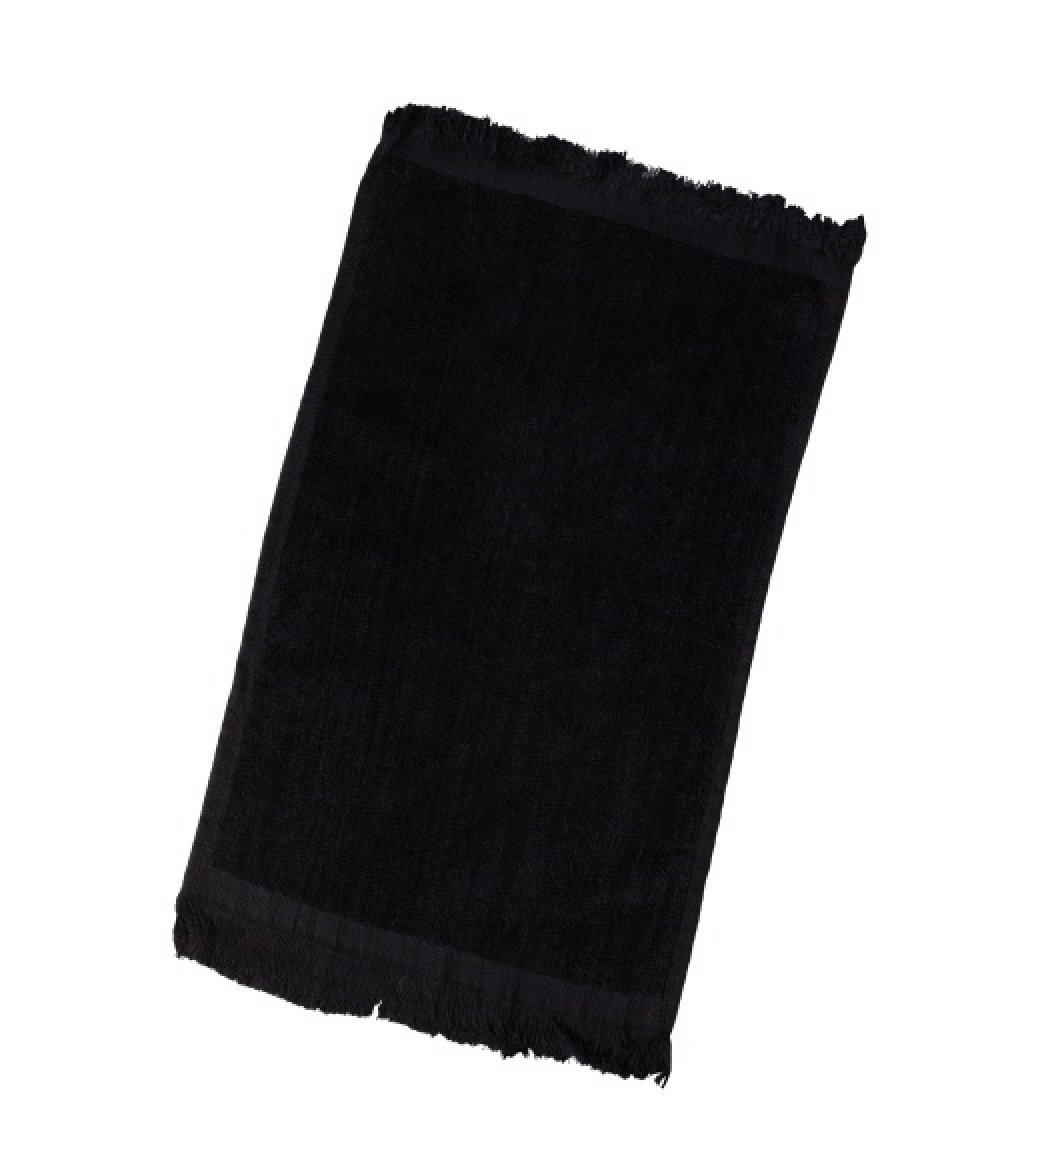 Terry Velour Fingertip Towel with Fringed Ends (6, Black)